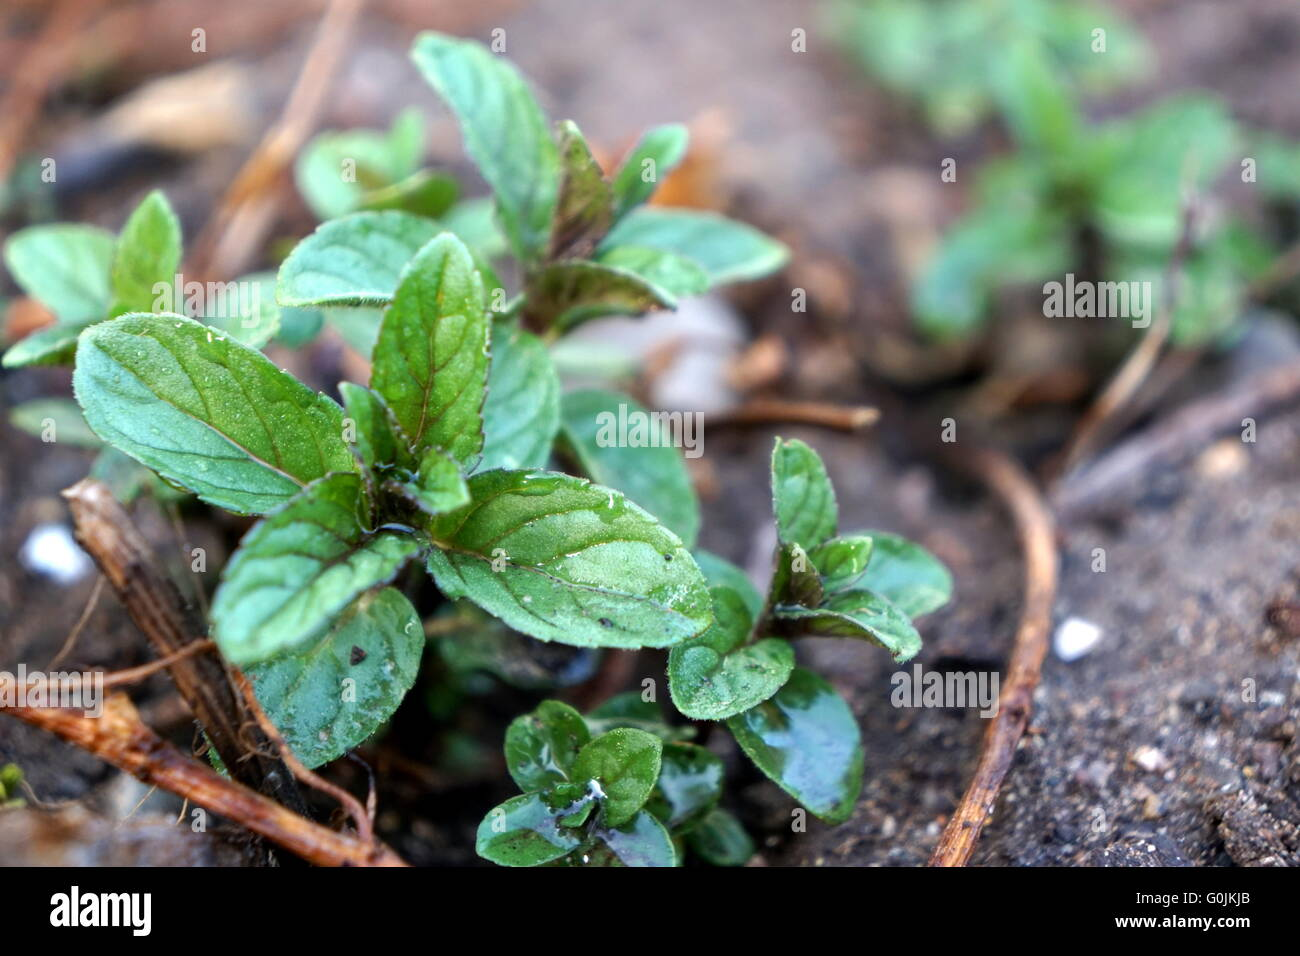 Chocolate Mint Plant Close Up Stock Photo, Royalty Free Image ...